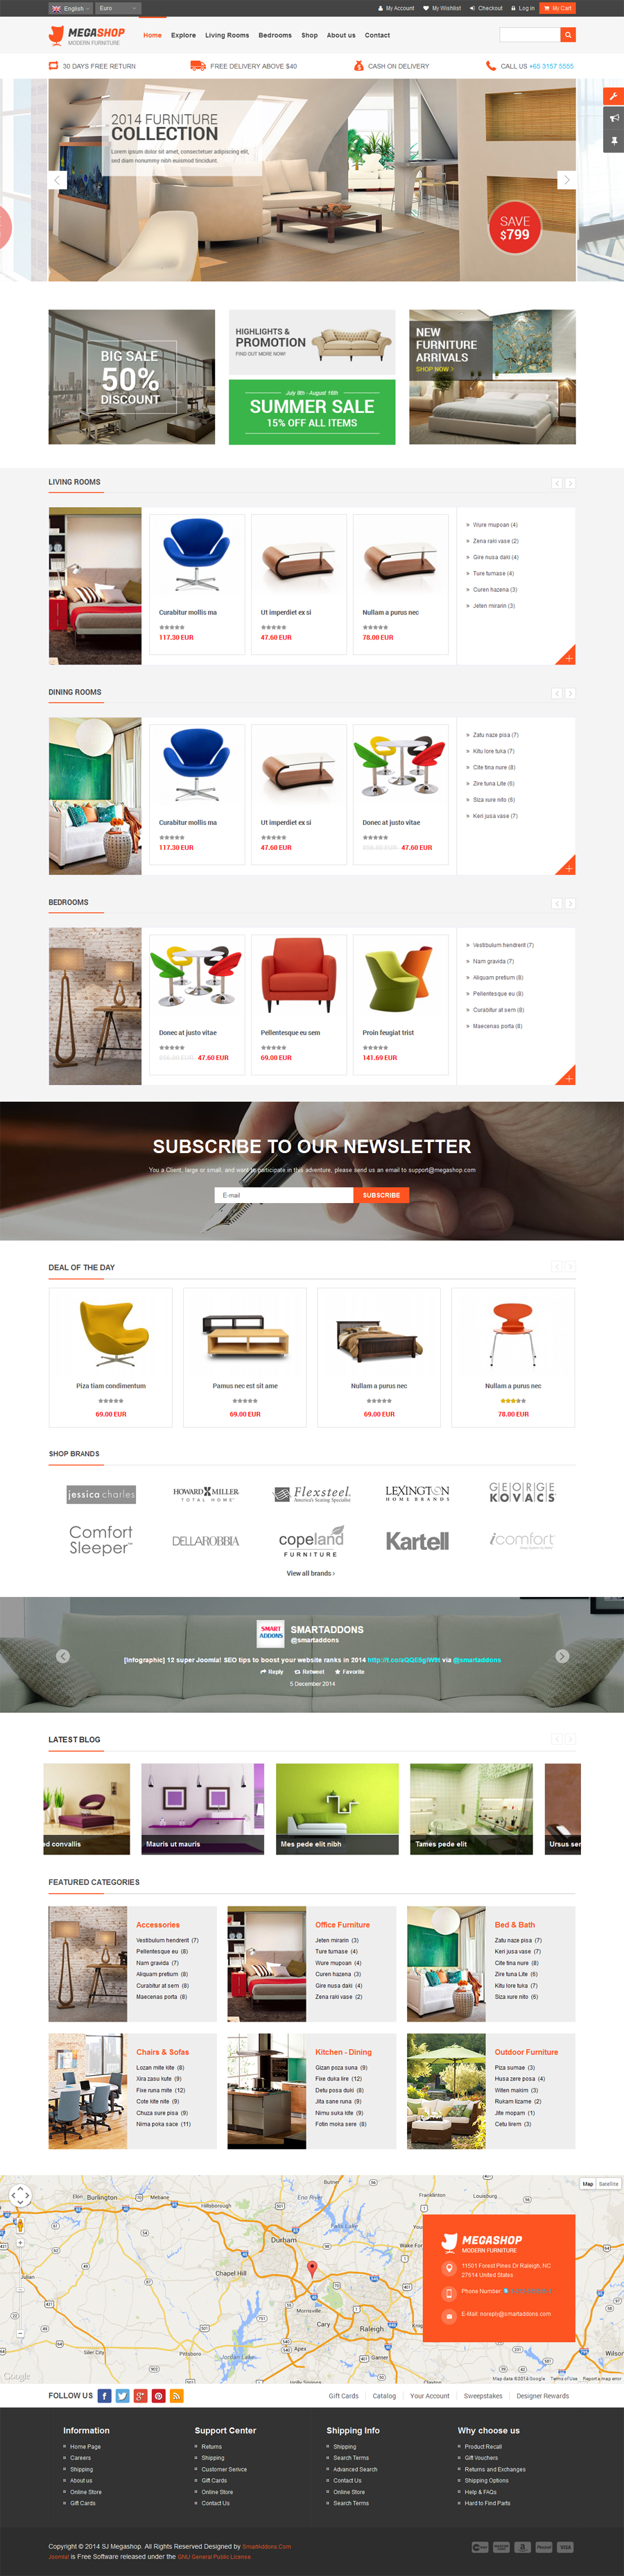 SJ MegaShop - Responsive eCommerce Joomla Template - 04_orange.png